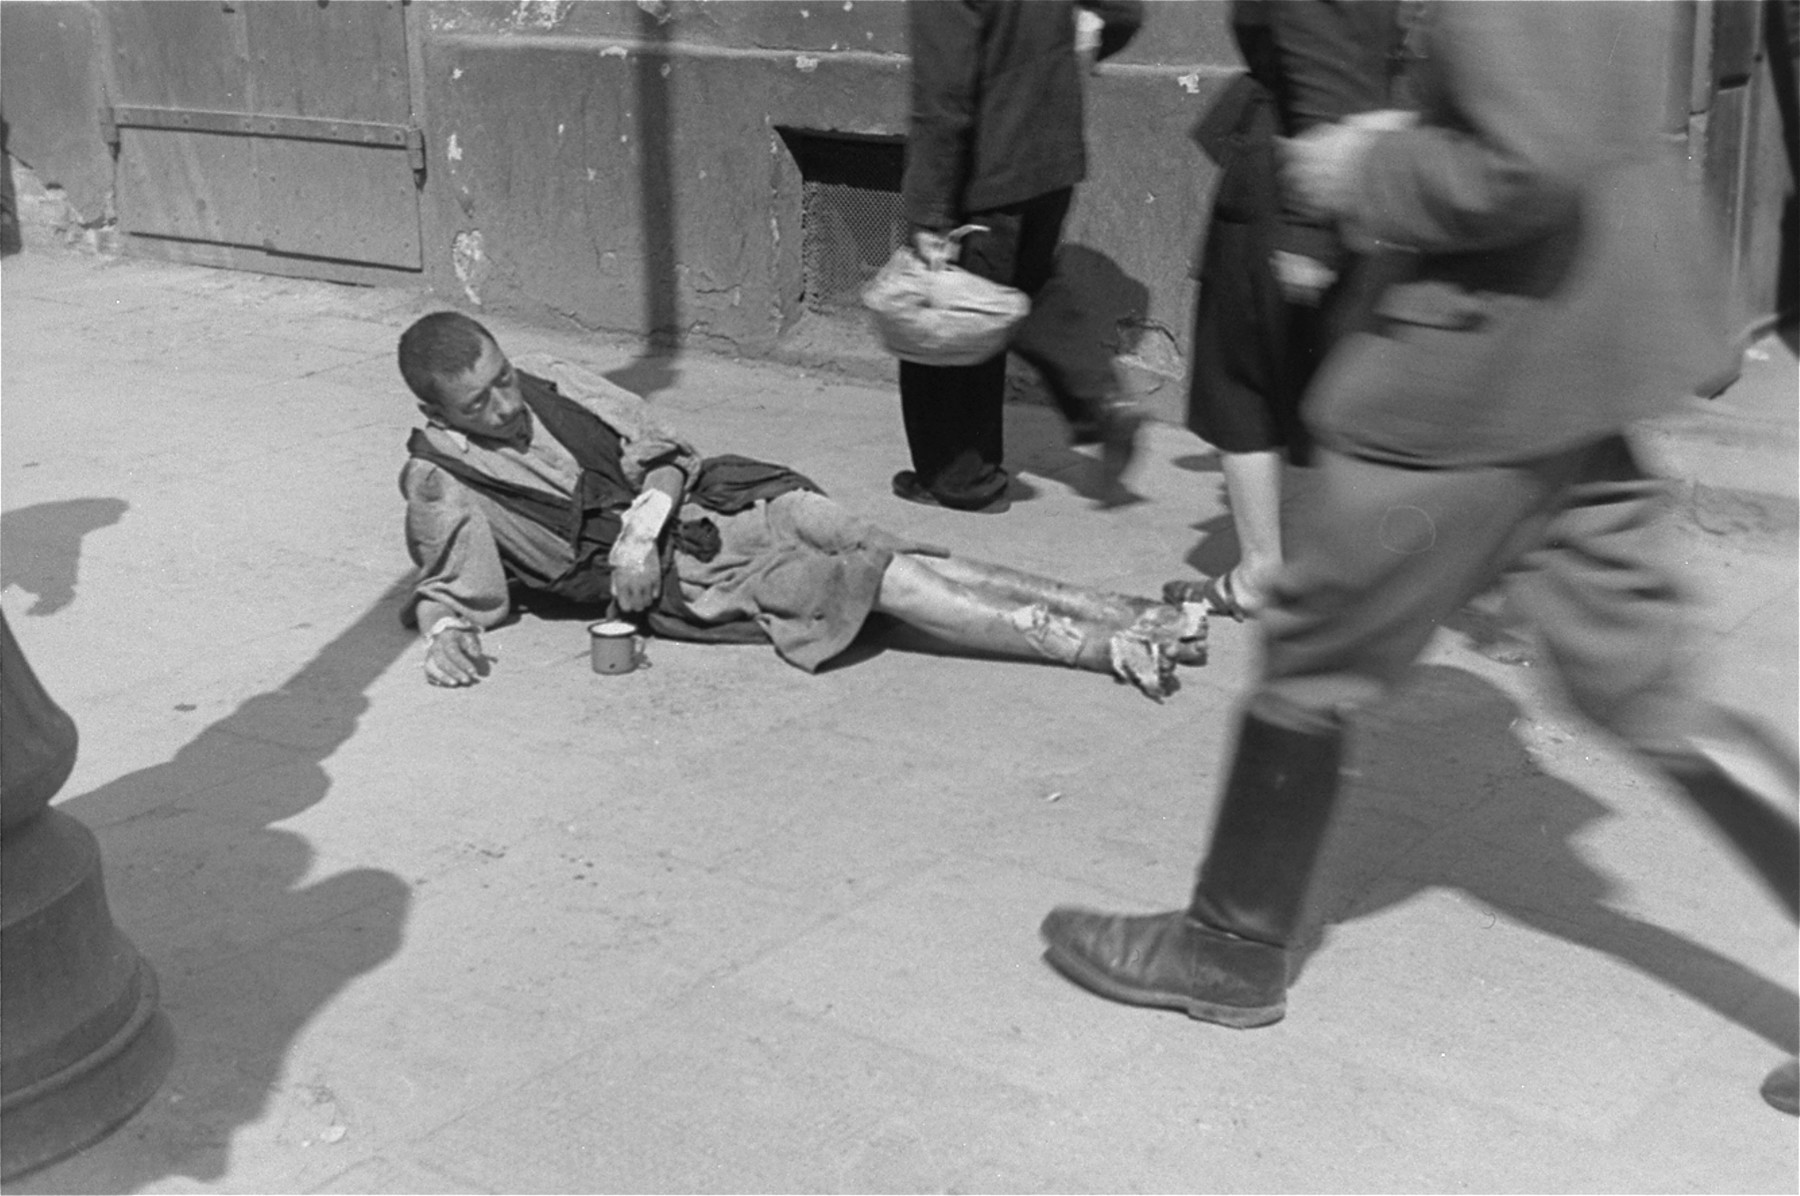 A destitute young man lies on the street in the Warsaw ghetto with a collection cup.